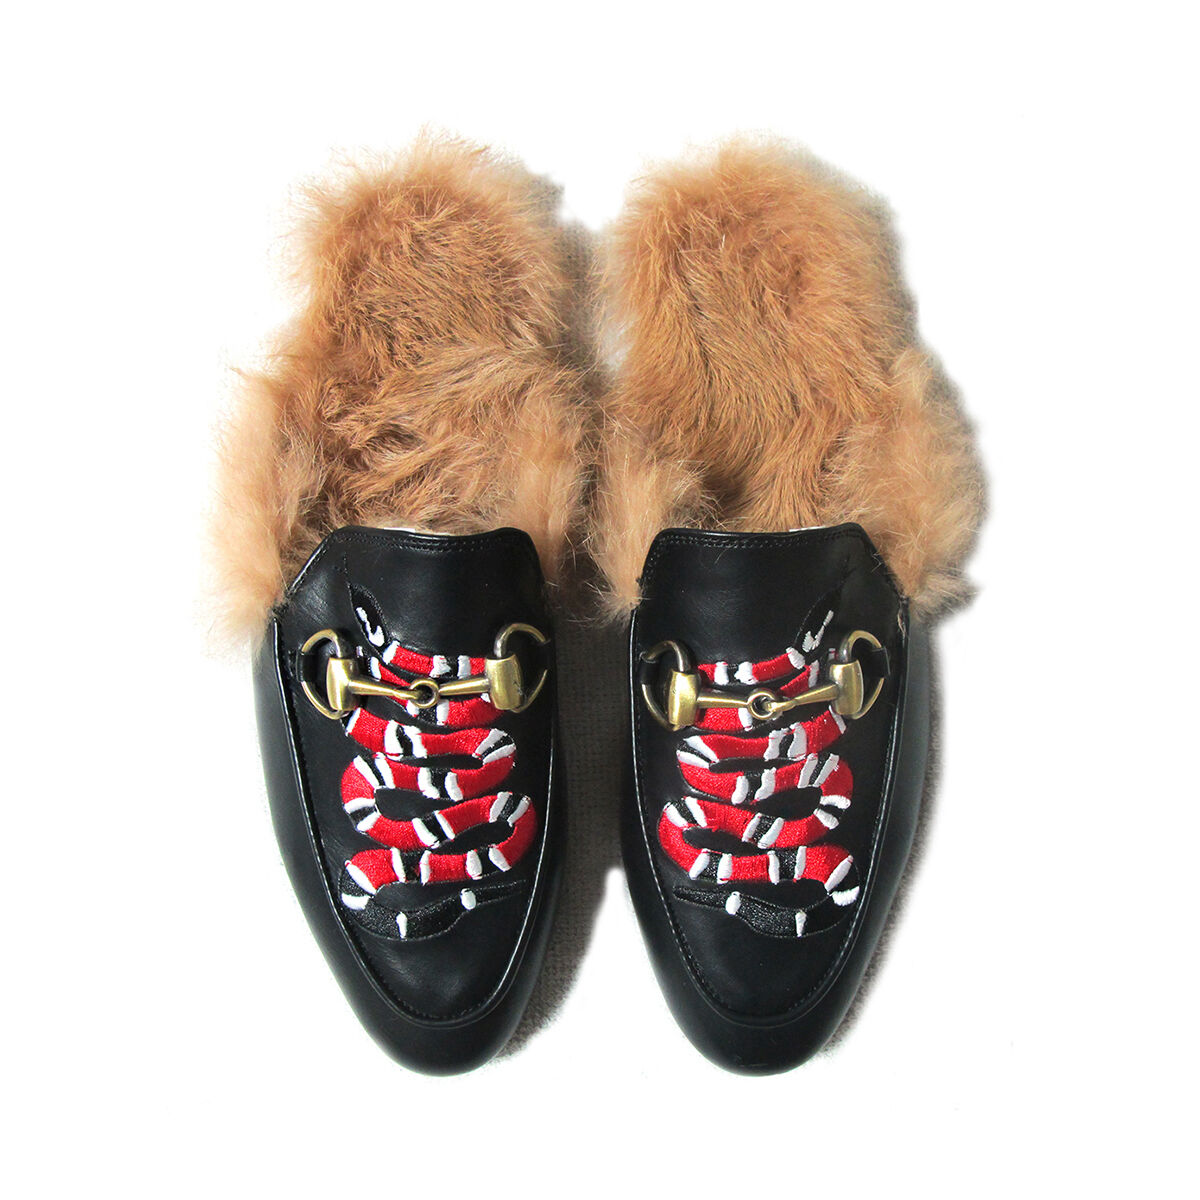 Embroidered Snake Appliqué Rabbit-Fur Lined Princetown Slippers Mules / Loafers